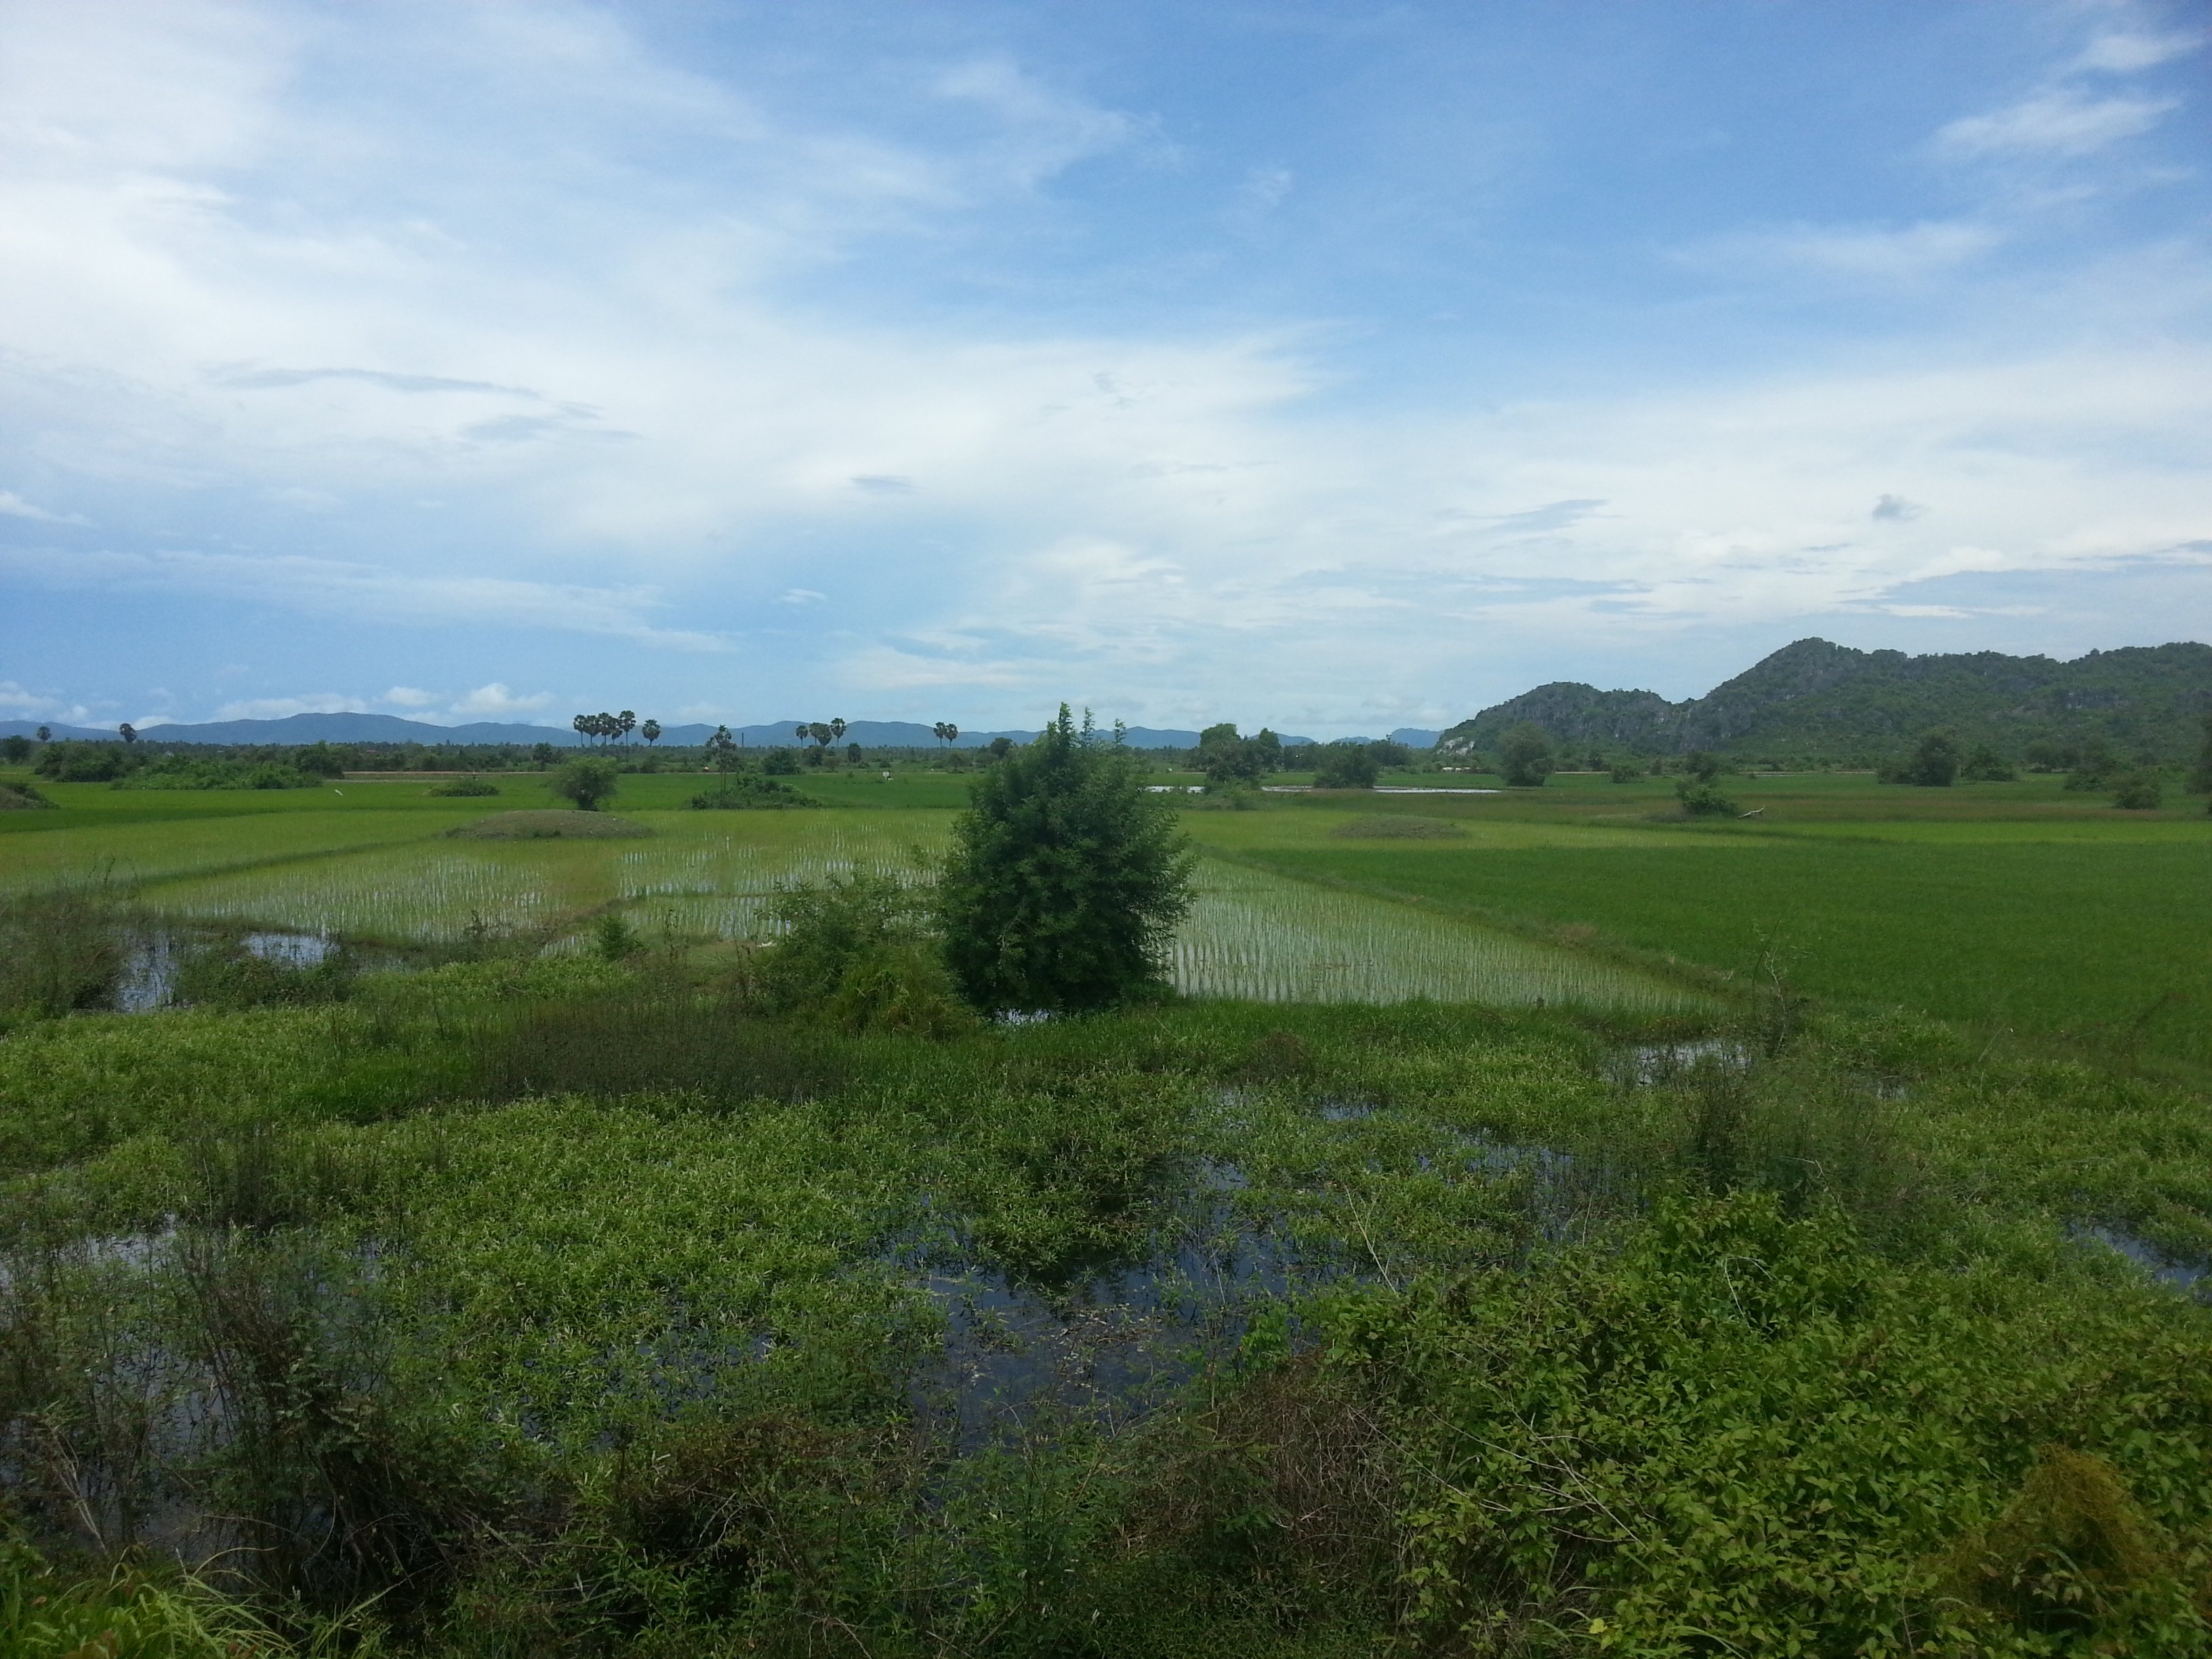 Paddy fields on the way to Sihanoukville